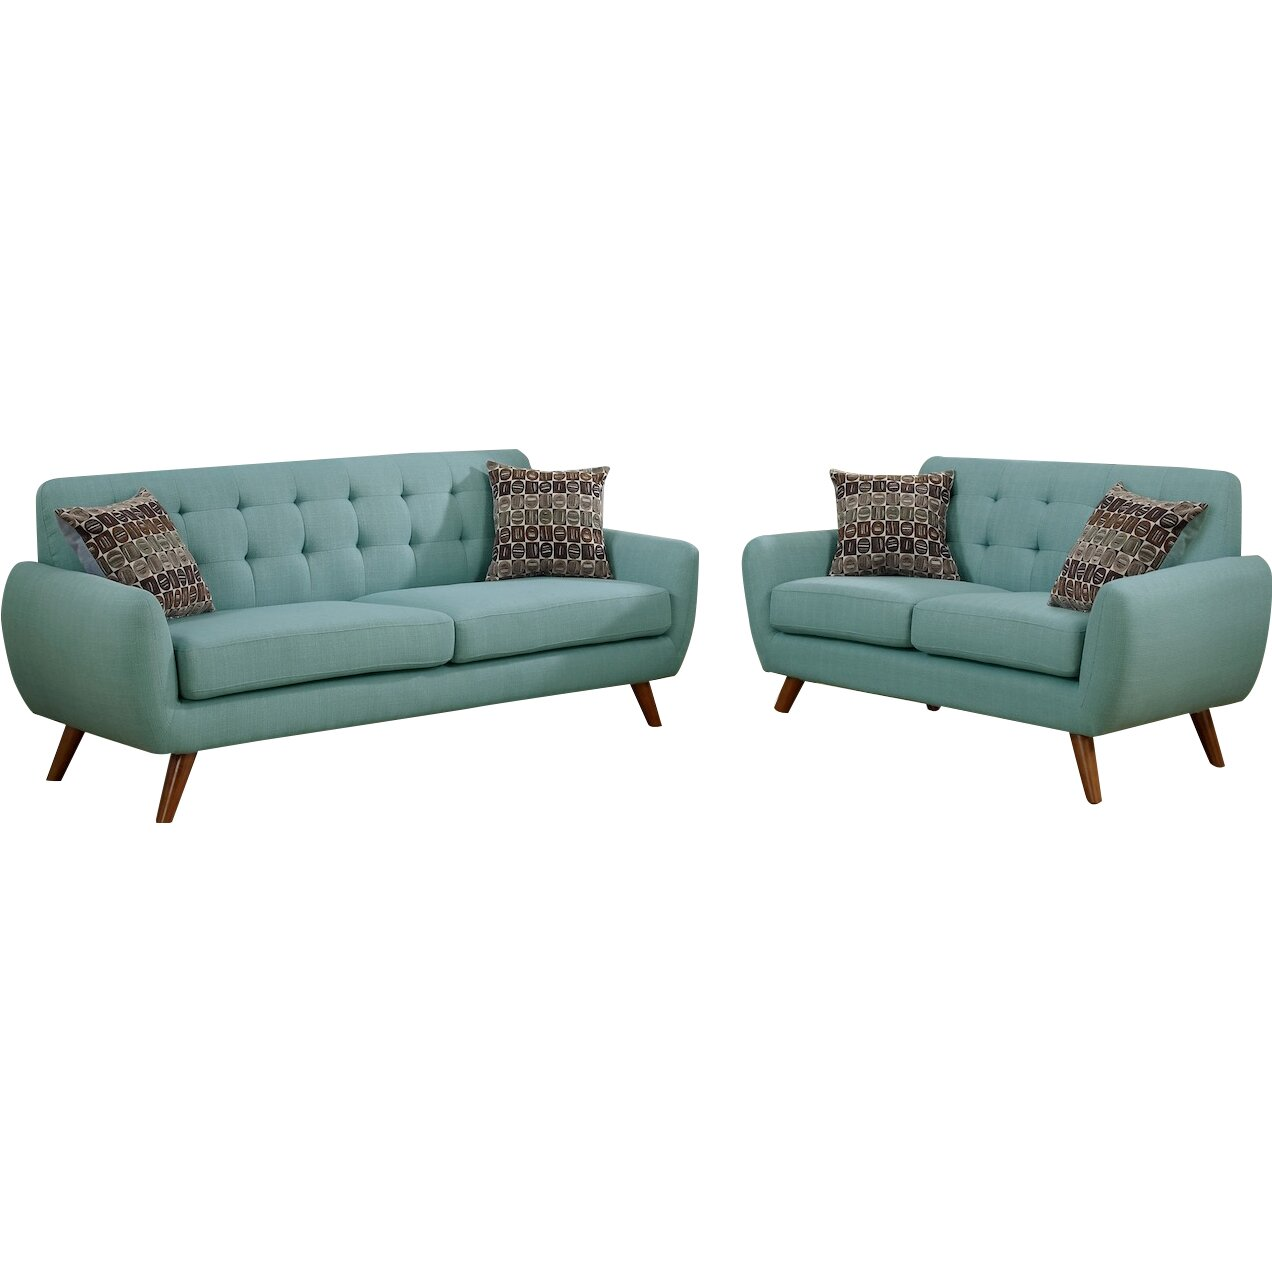 Infini furnishings modern retro sofa and loveseat for Modern loveseat